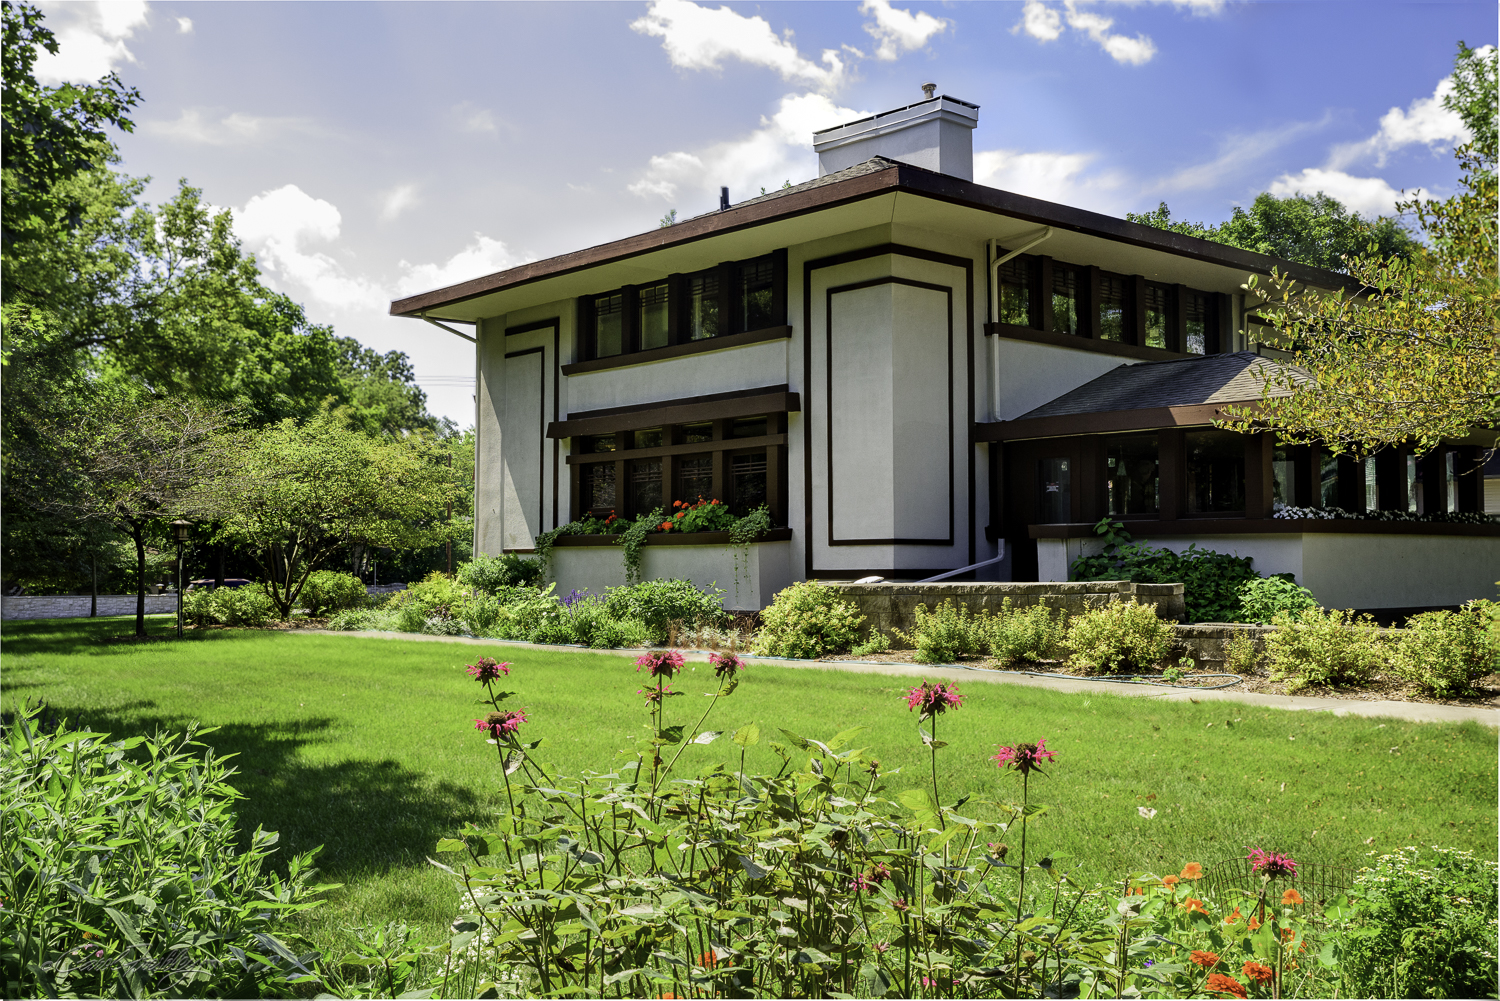 """This is known as the Stockman House. It was designed by Frank Lloyd Wright based on his open floor plan described in his 1907  Ladies Home Journal  article """"A Fireproof House for $5,000. The design was to become the Prairie School approach to housing needs of America's middle class. The home is now owned by the River City Society for Historic Research and is open to the general public as a house museum. It was not open when we visited the site."""